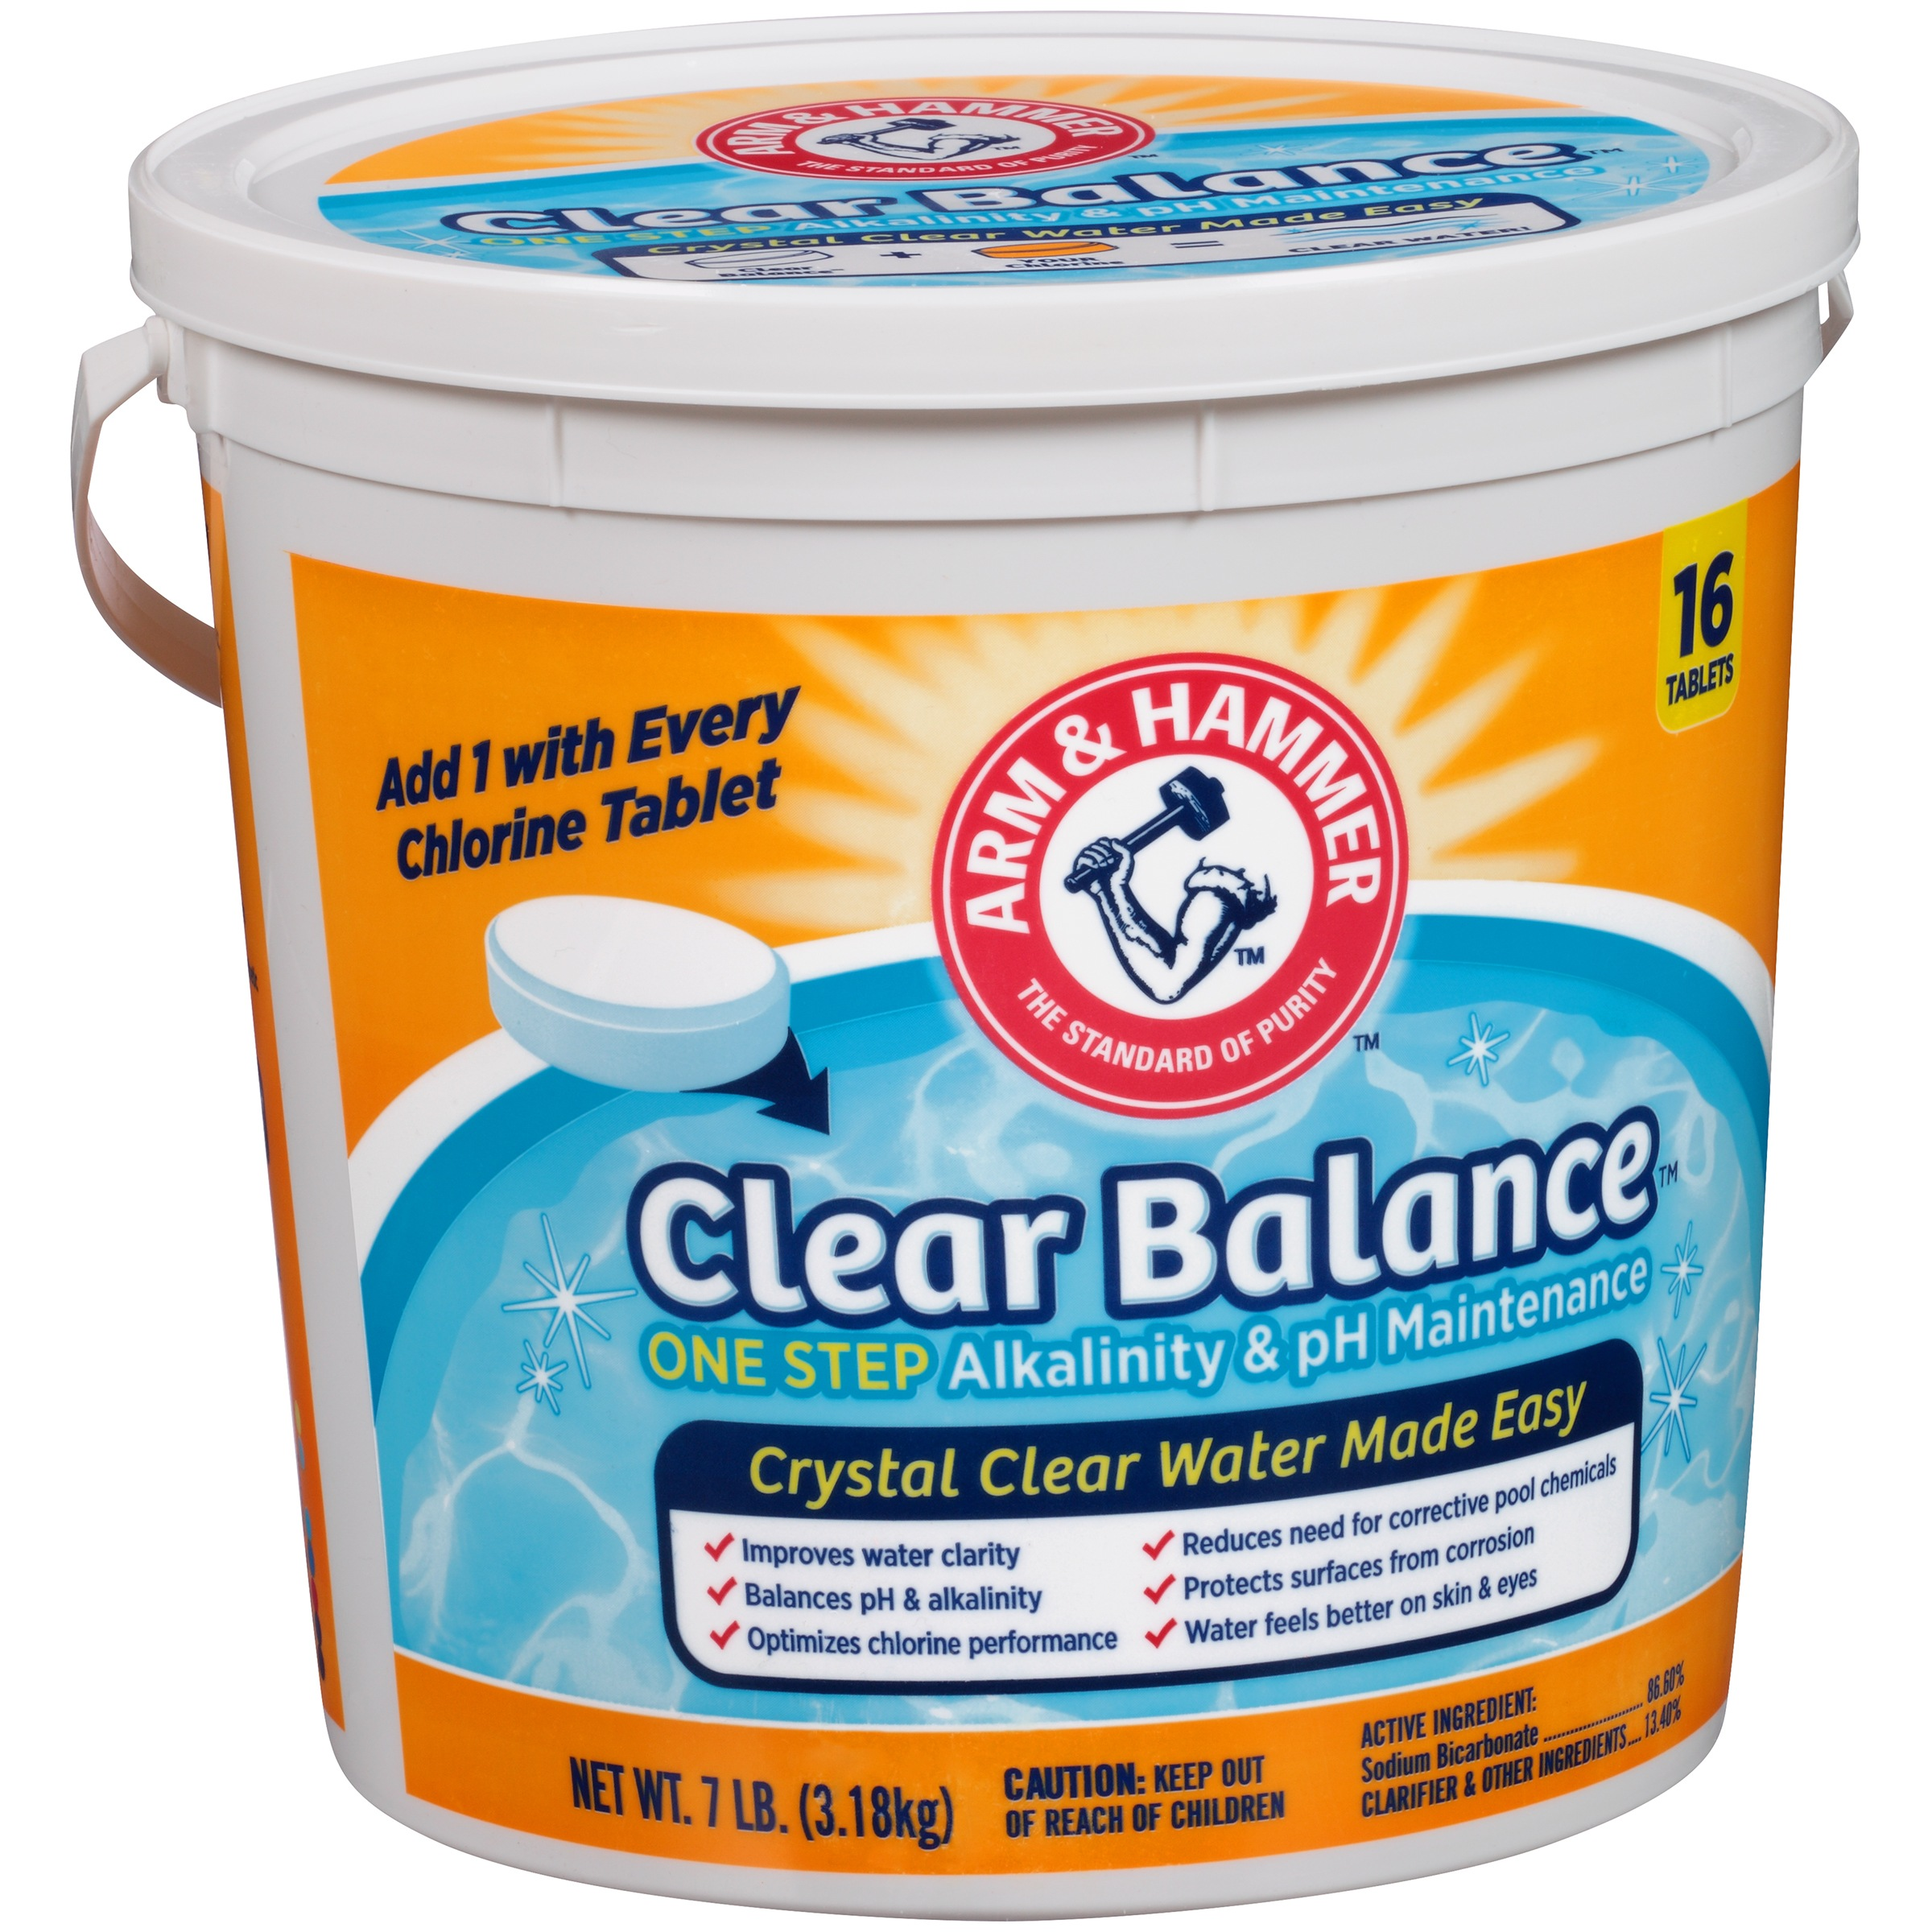 Arm & Hammer Clear Balance Swimming Pool Maintenance Tablets, 16 Count